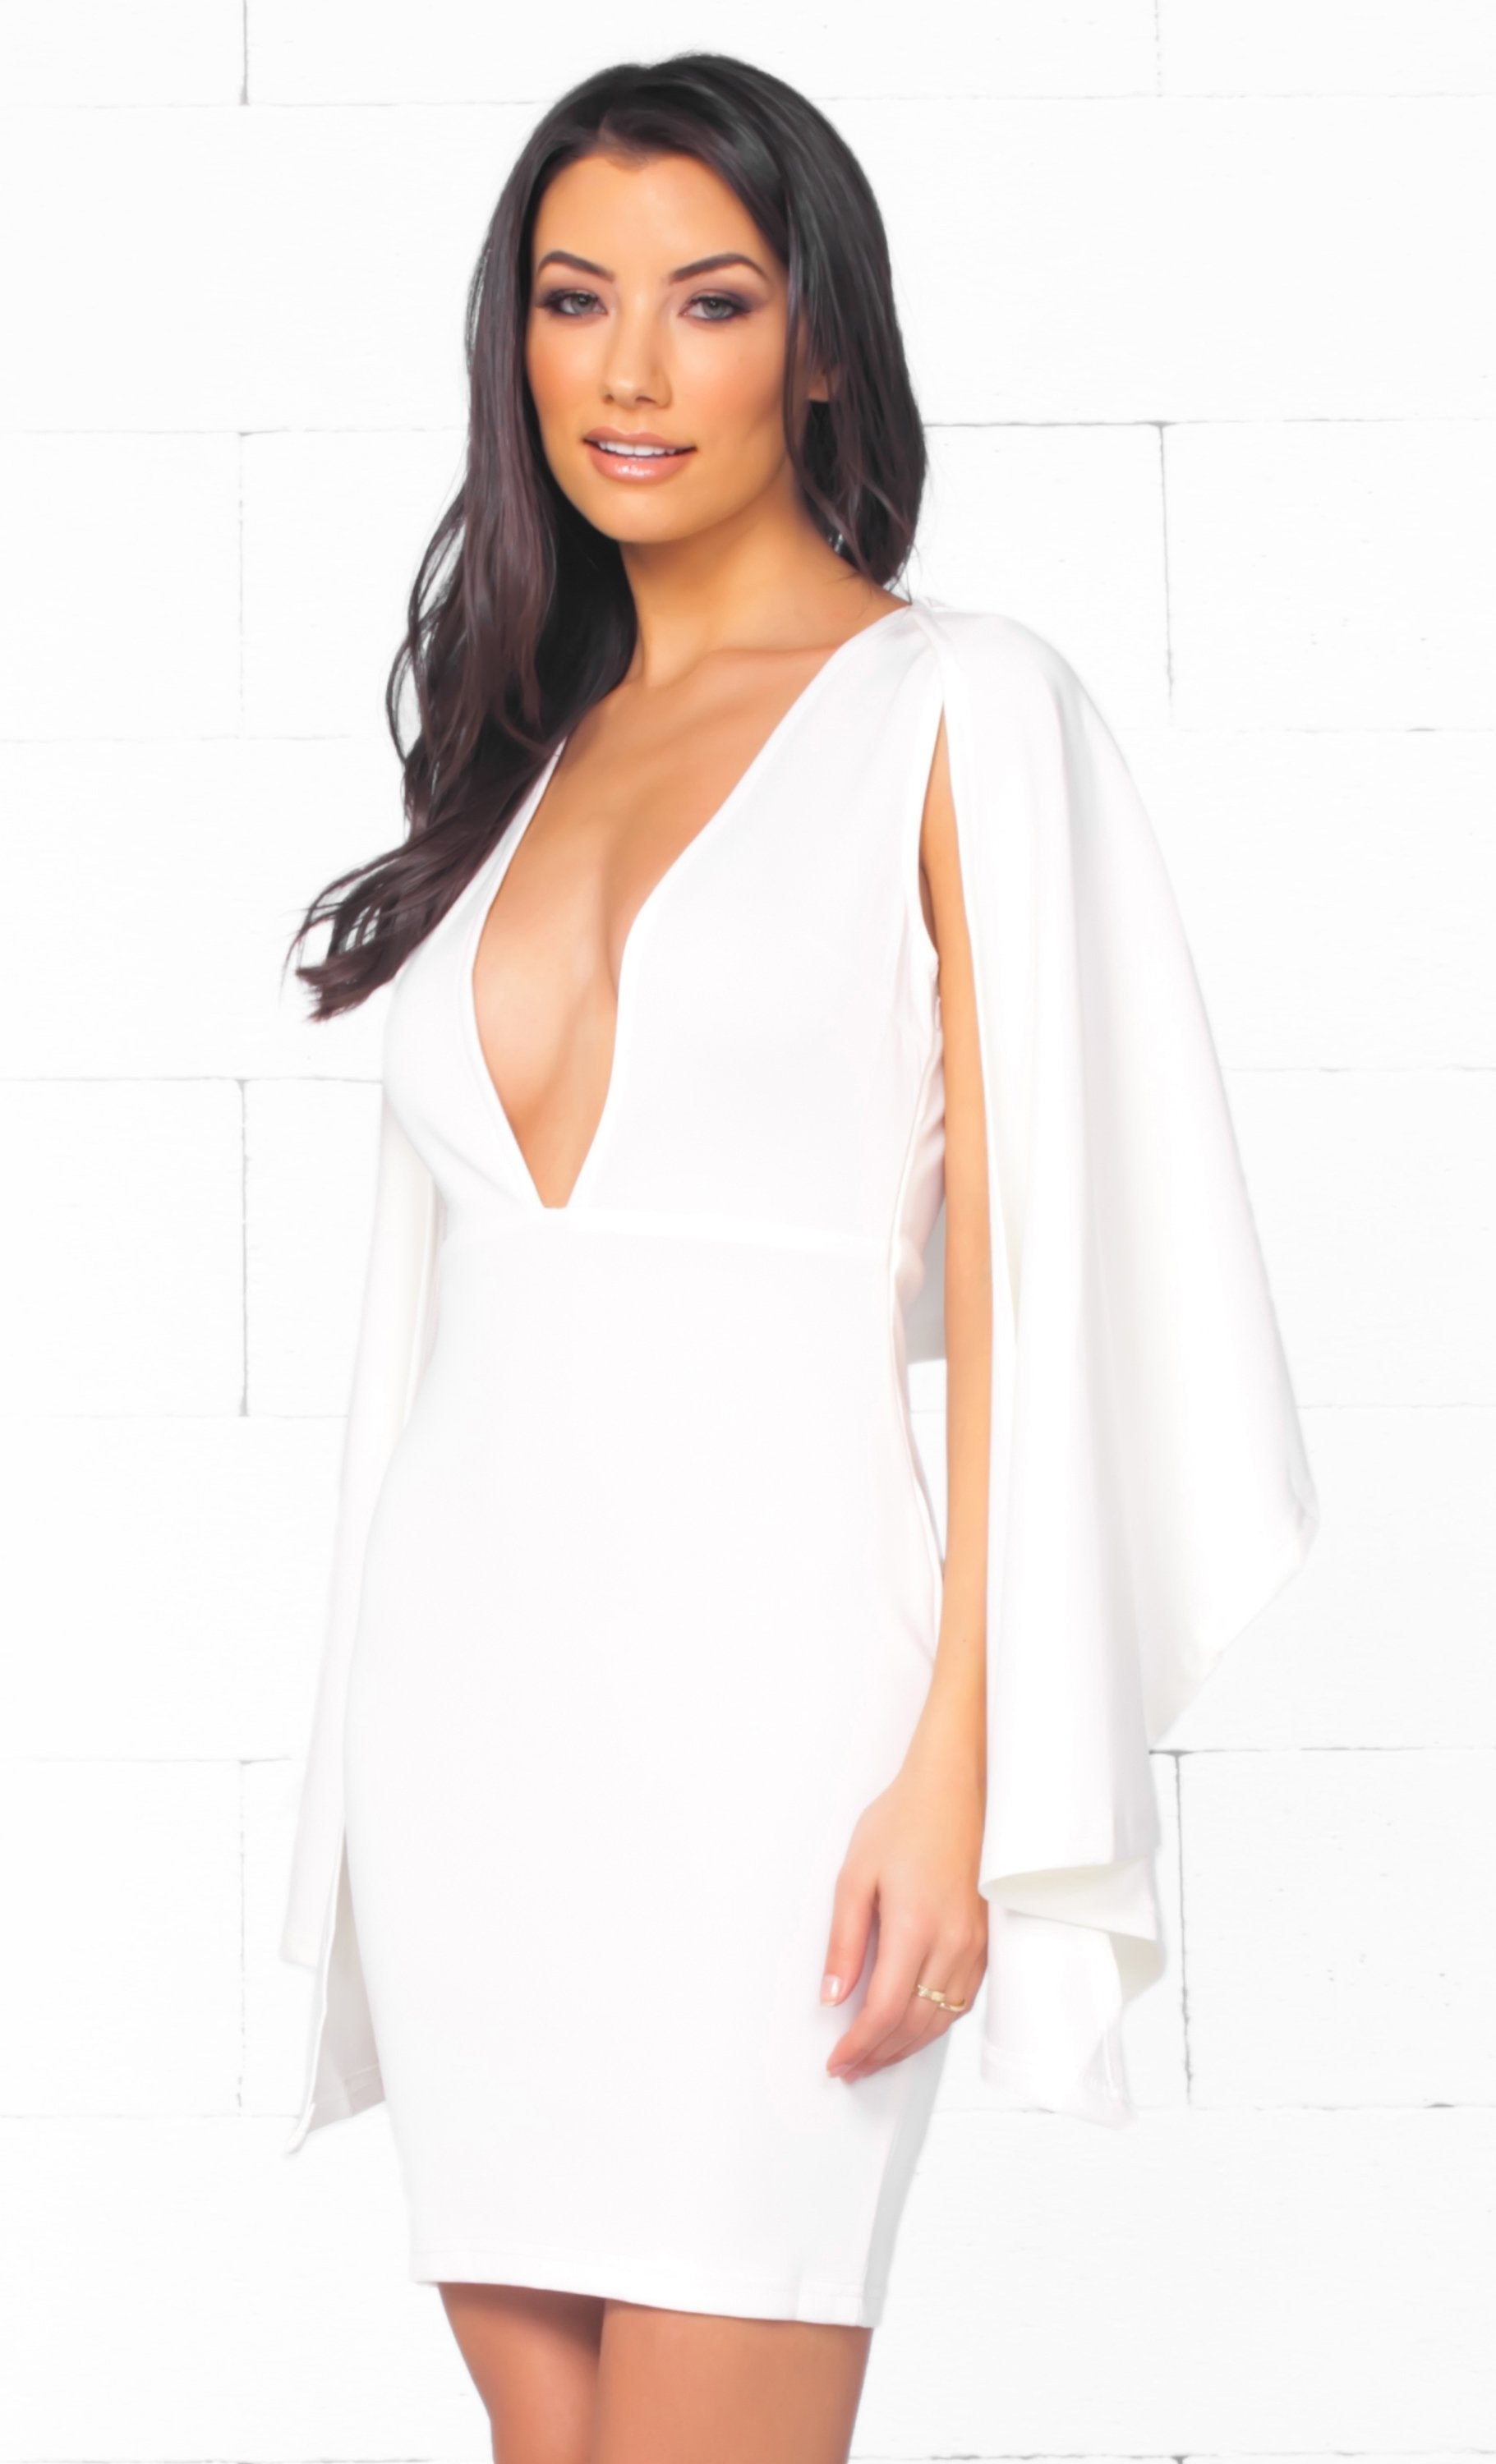 Indie XO Simply Irresistible White Long Split Sleeve Deep V Neck Bodycon Cape Mini Dress - Just Ours - Sold Out